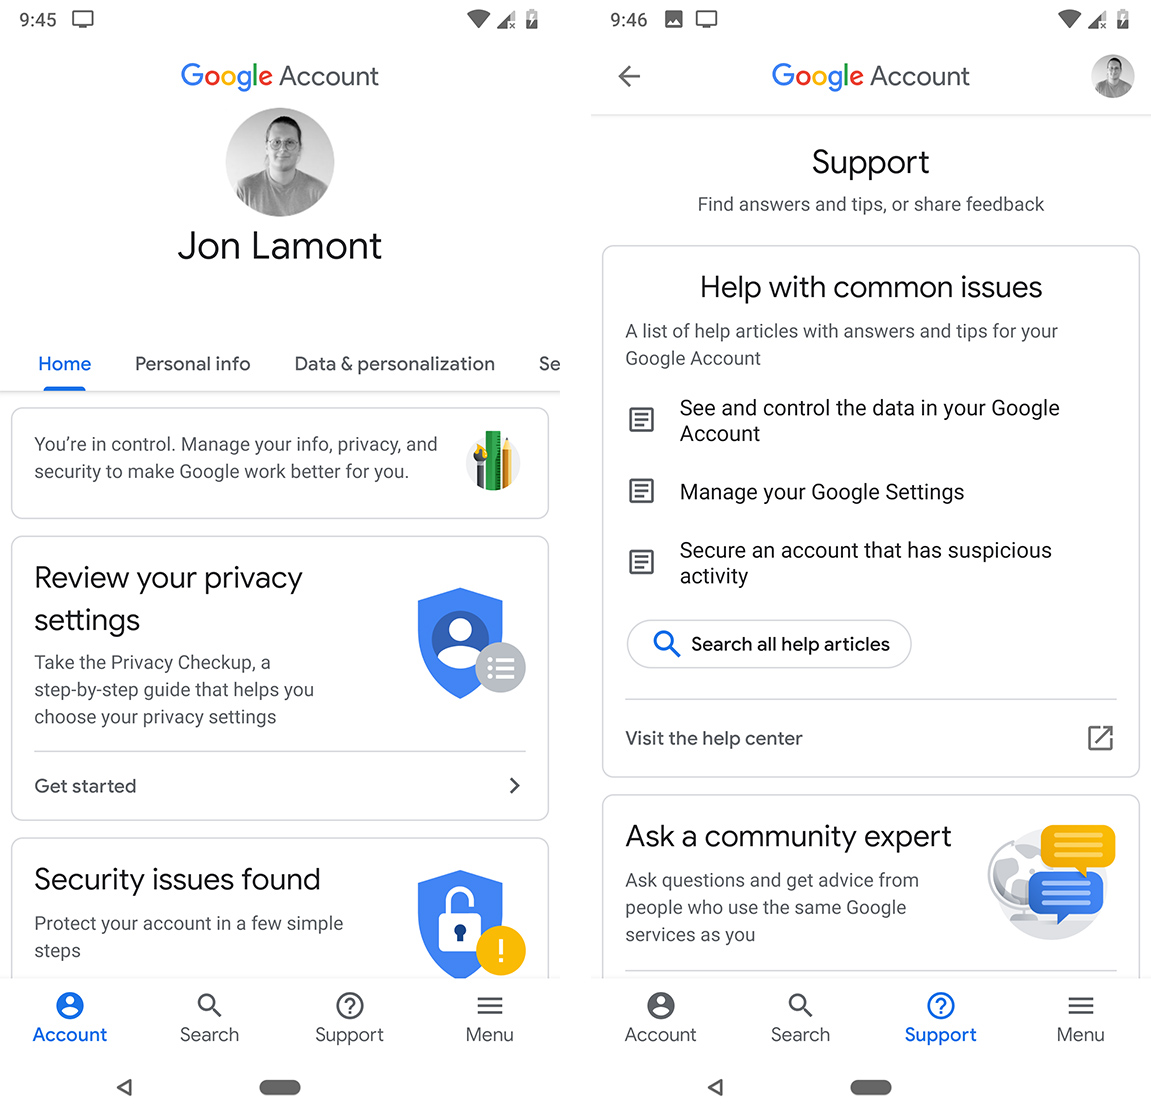 Google Account home screen and Support page